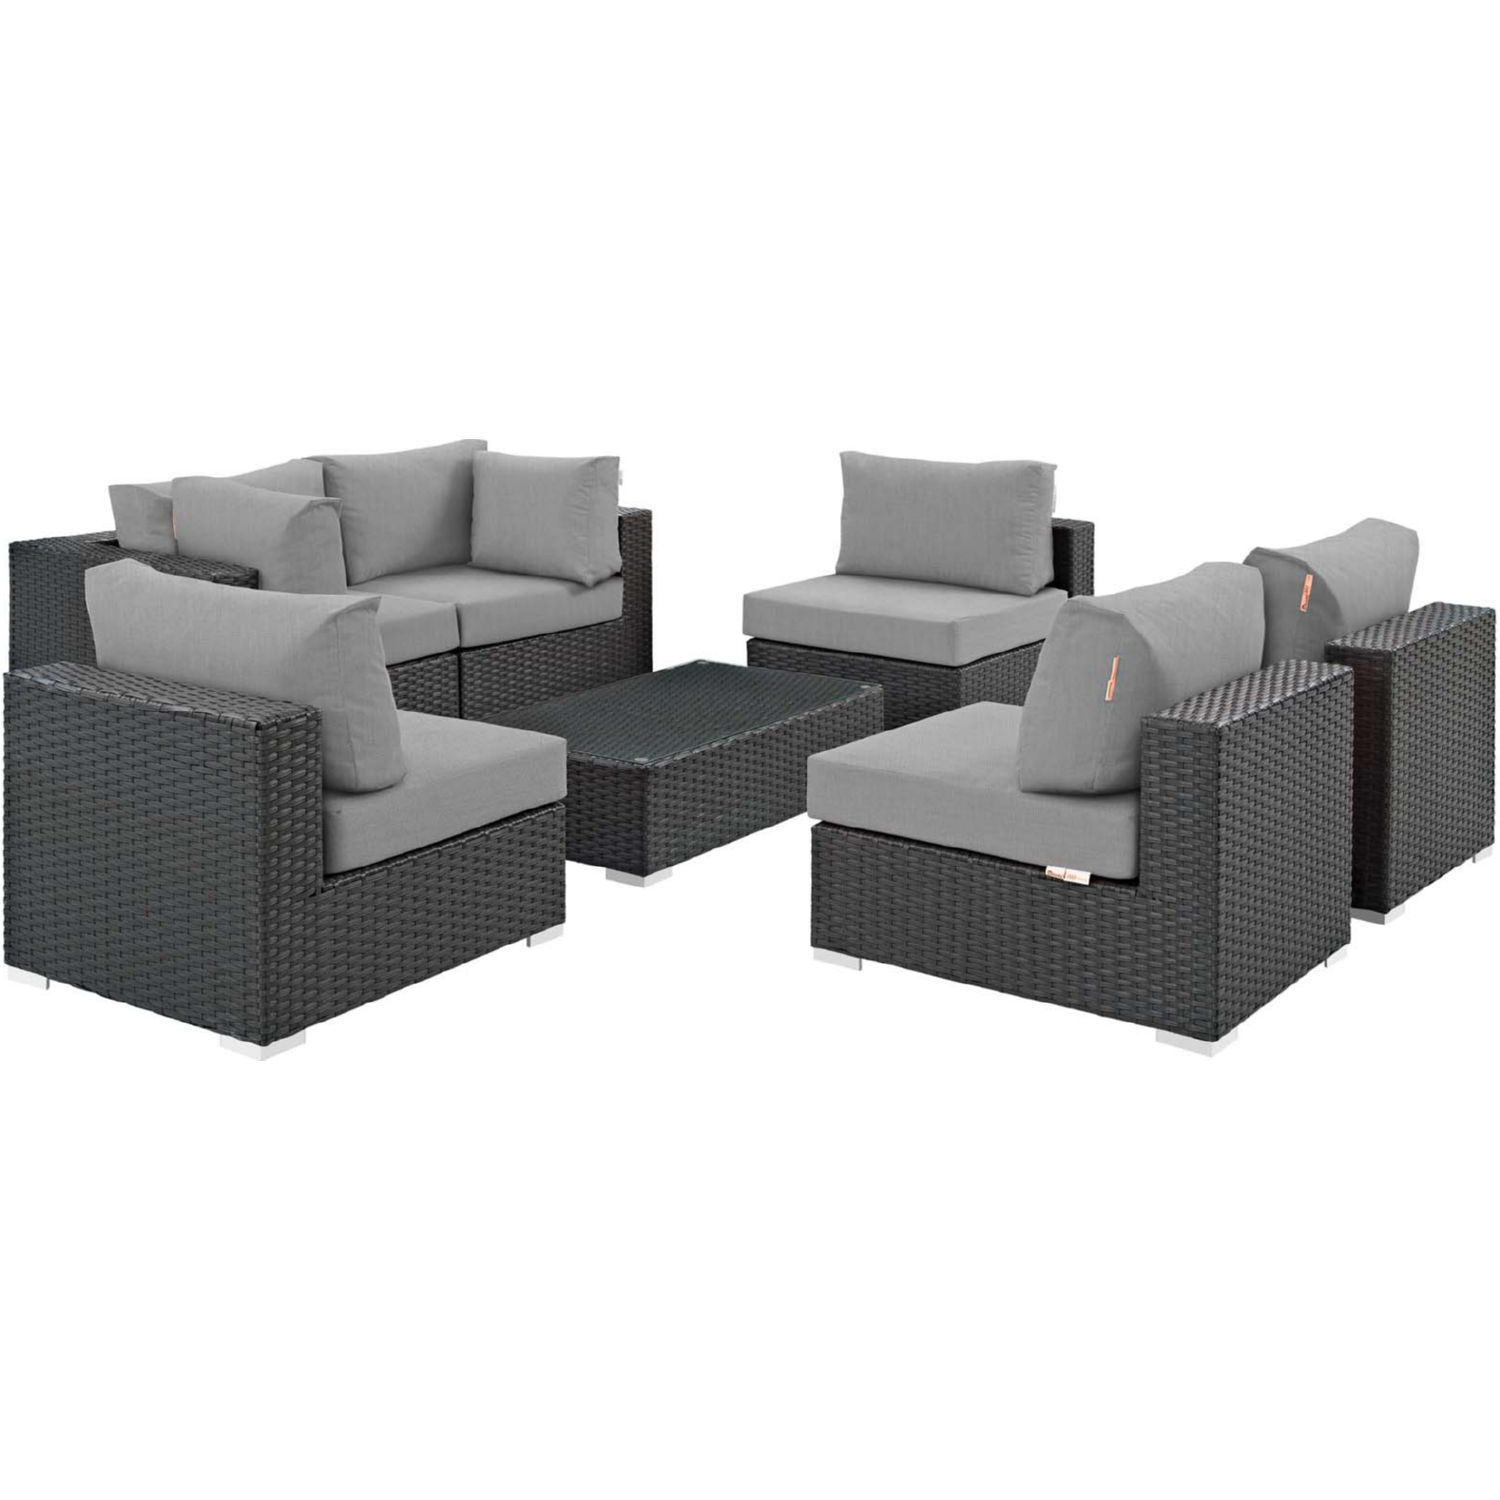 Modway EEI-1883-CHC-GRY-SET Sojourn 7 Piece Outdoor ...